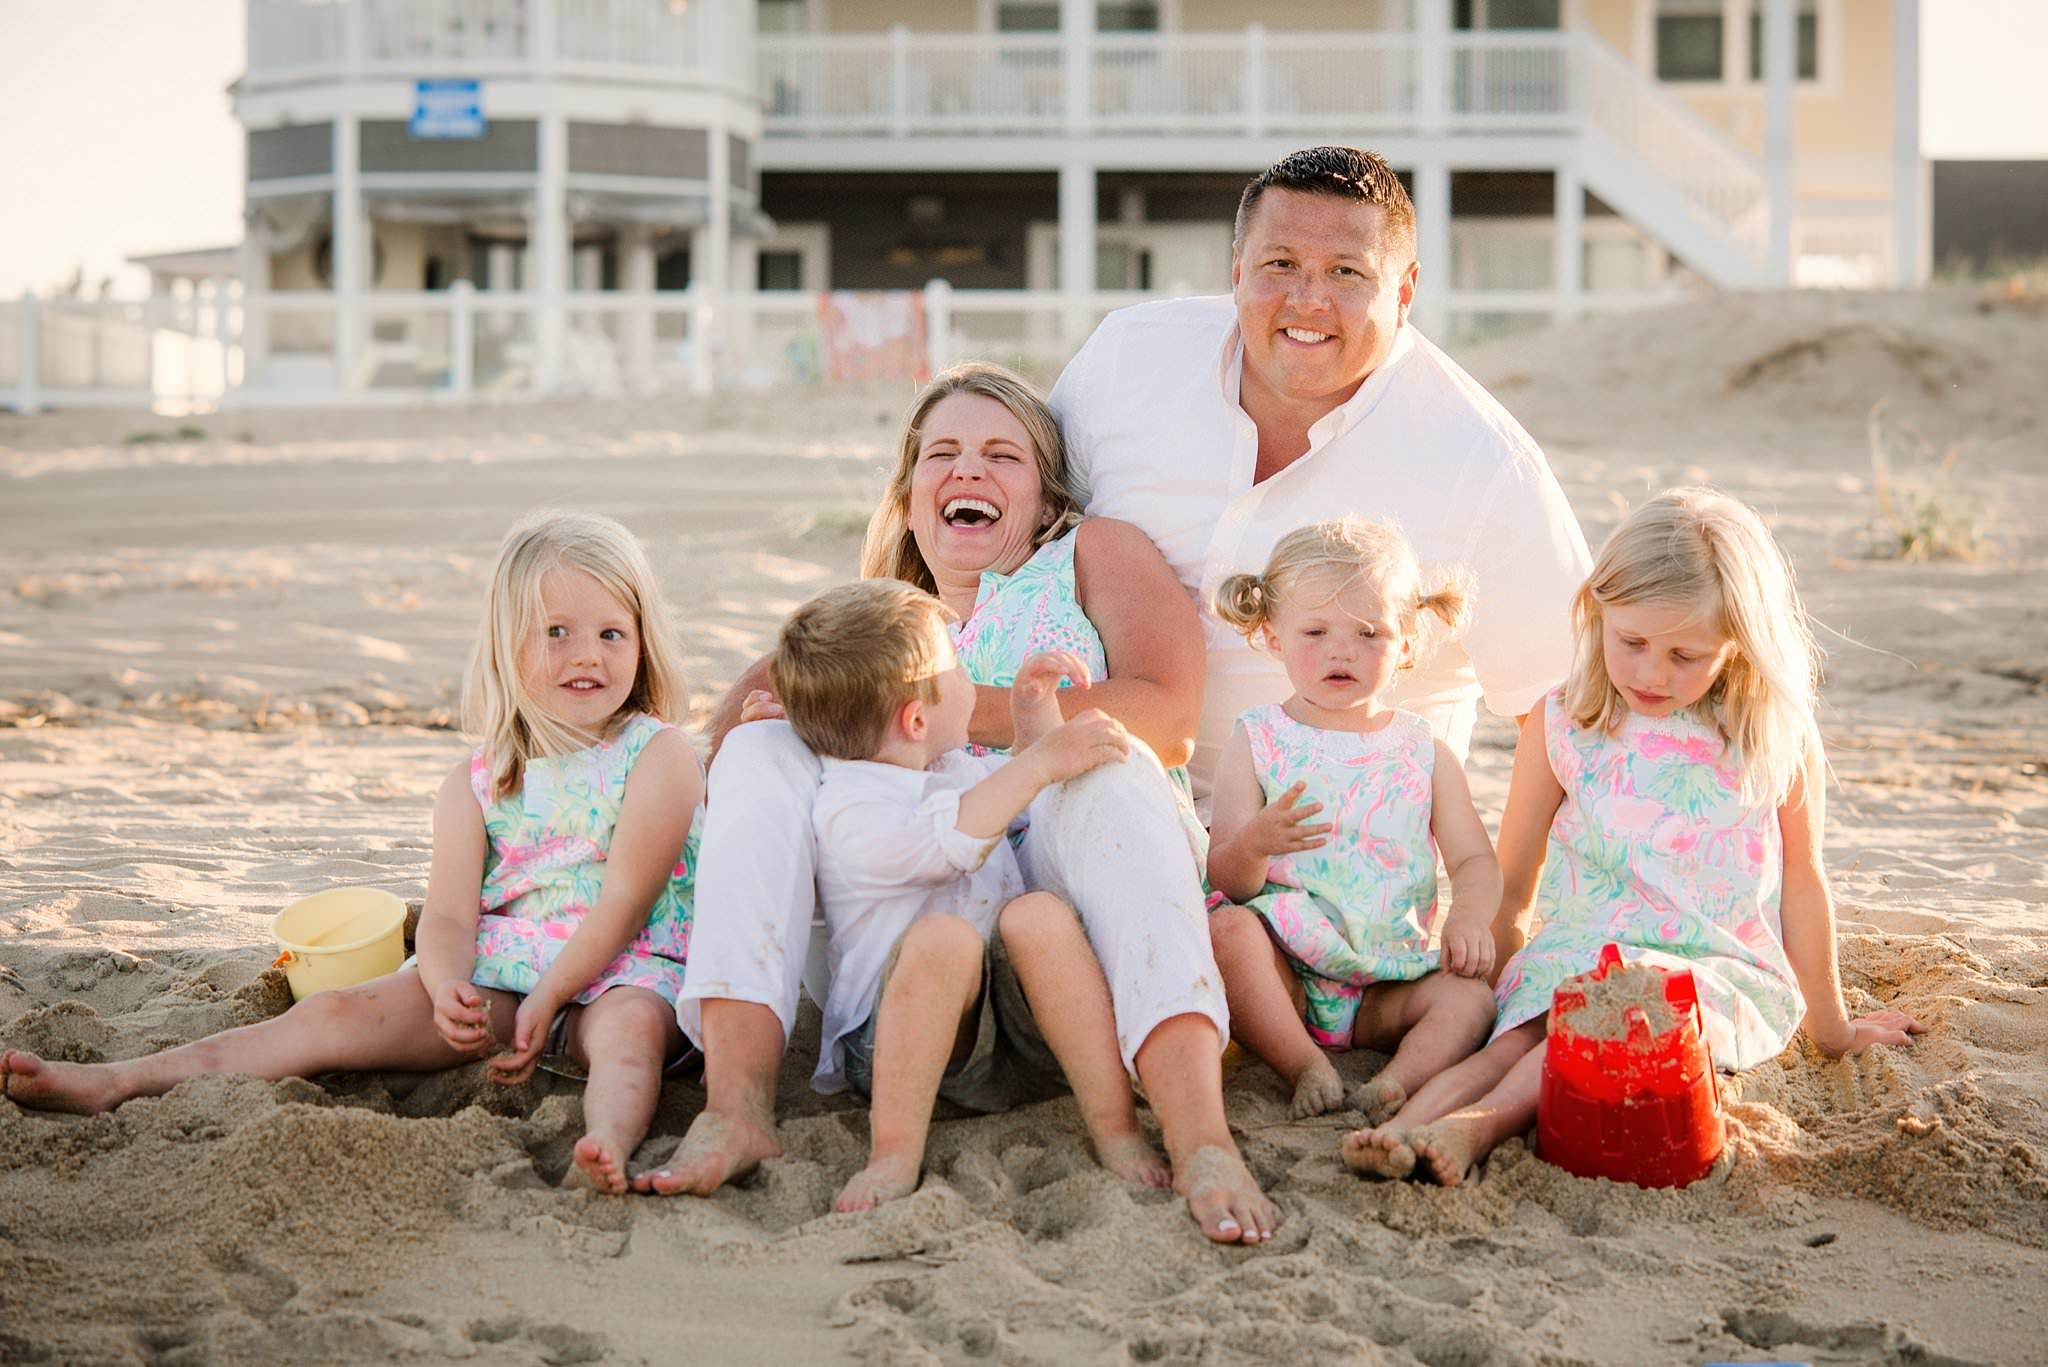 sunset-family-pictures-in-sandbridge-melissa-bliss-photography-va-beach-lifestyle-photographer.jpg